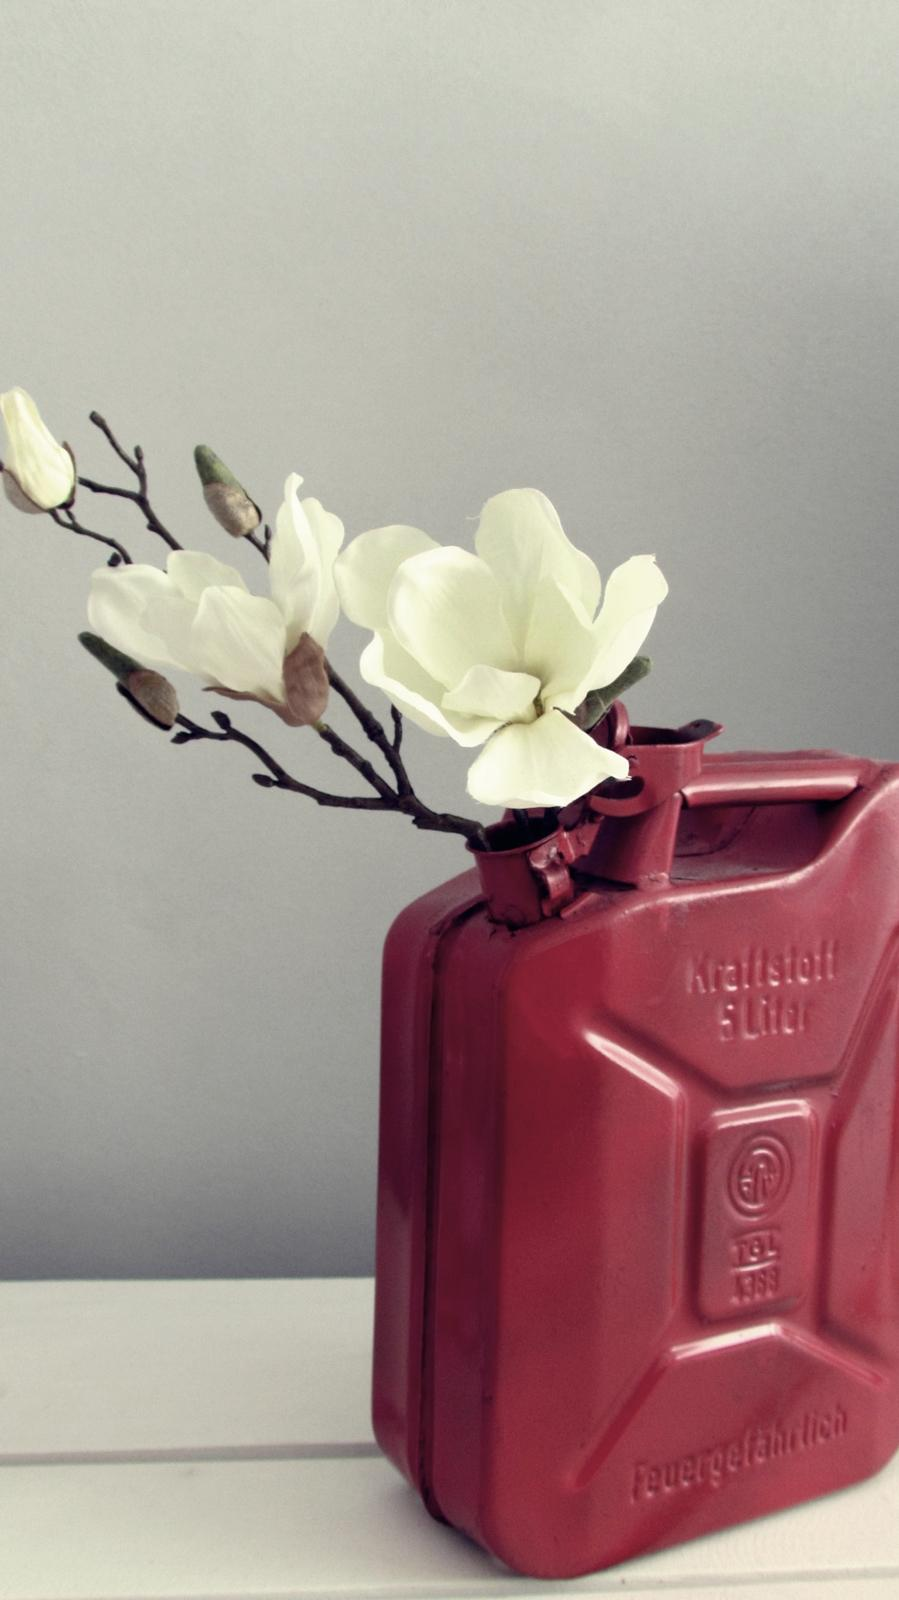 Benzinkanister als Vase #diy #upcycling ©roomrevolution